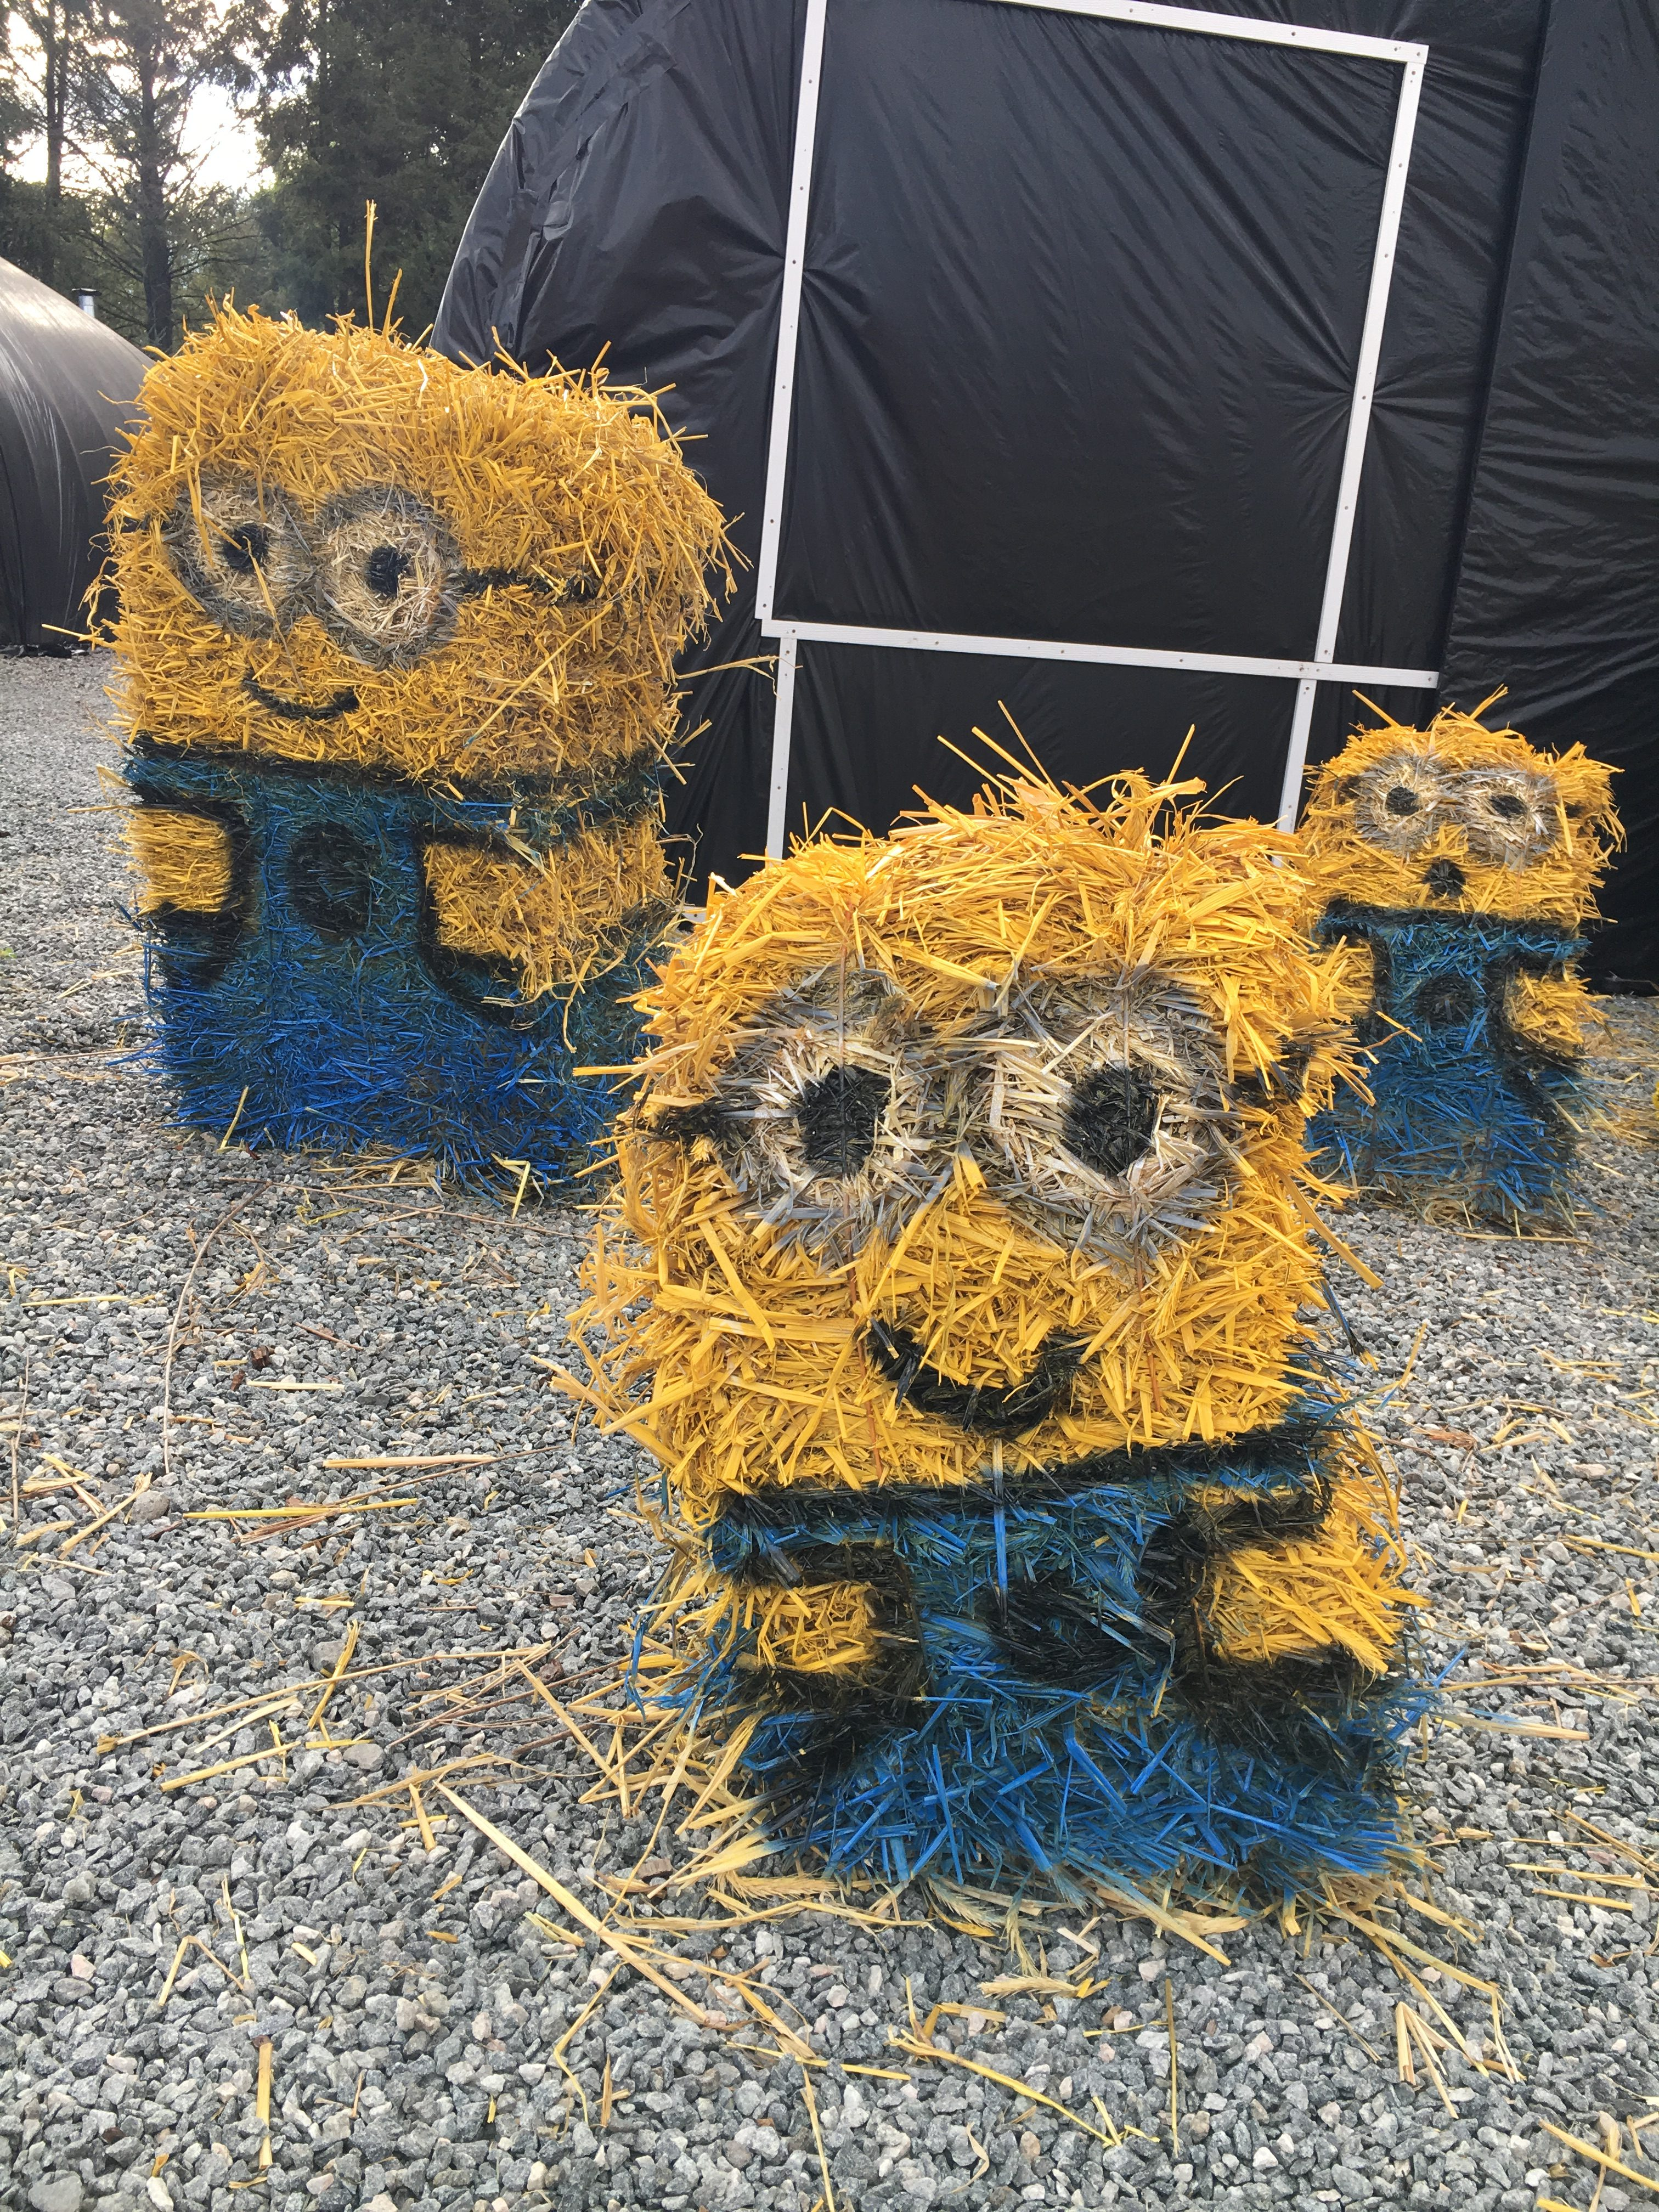 These too can be yours! Minions for sale!